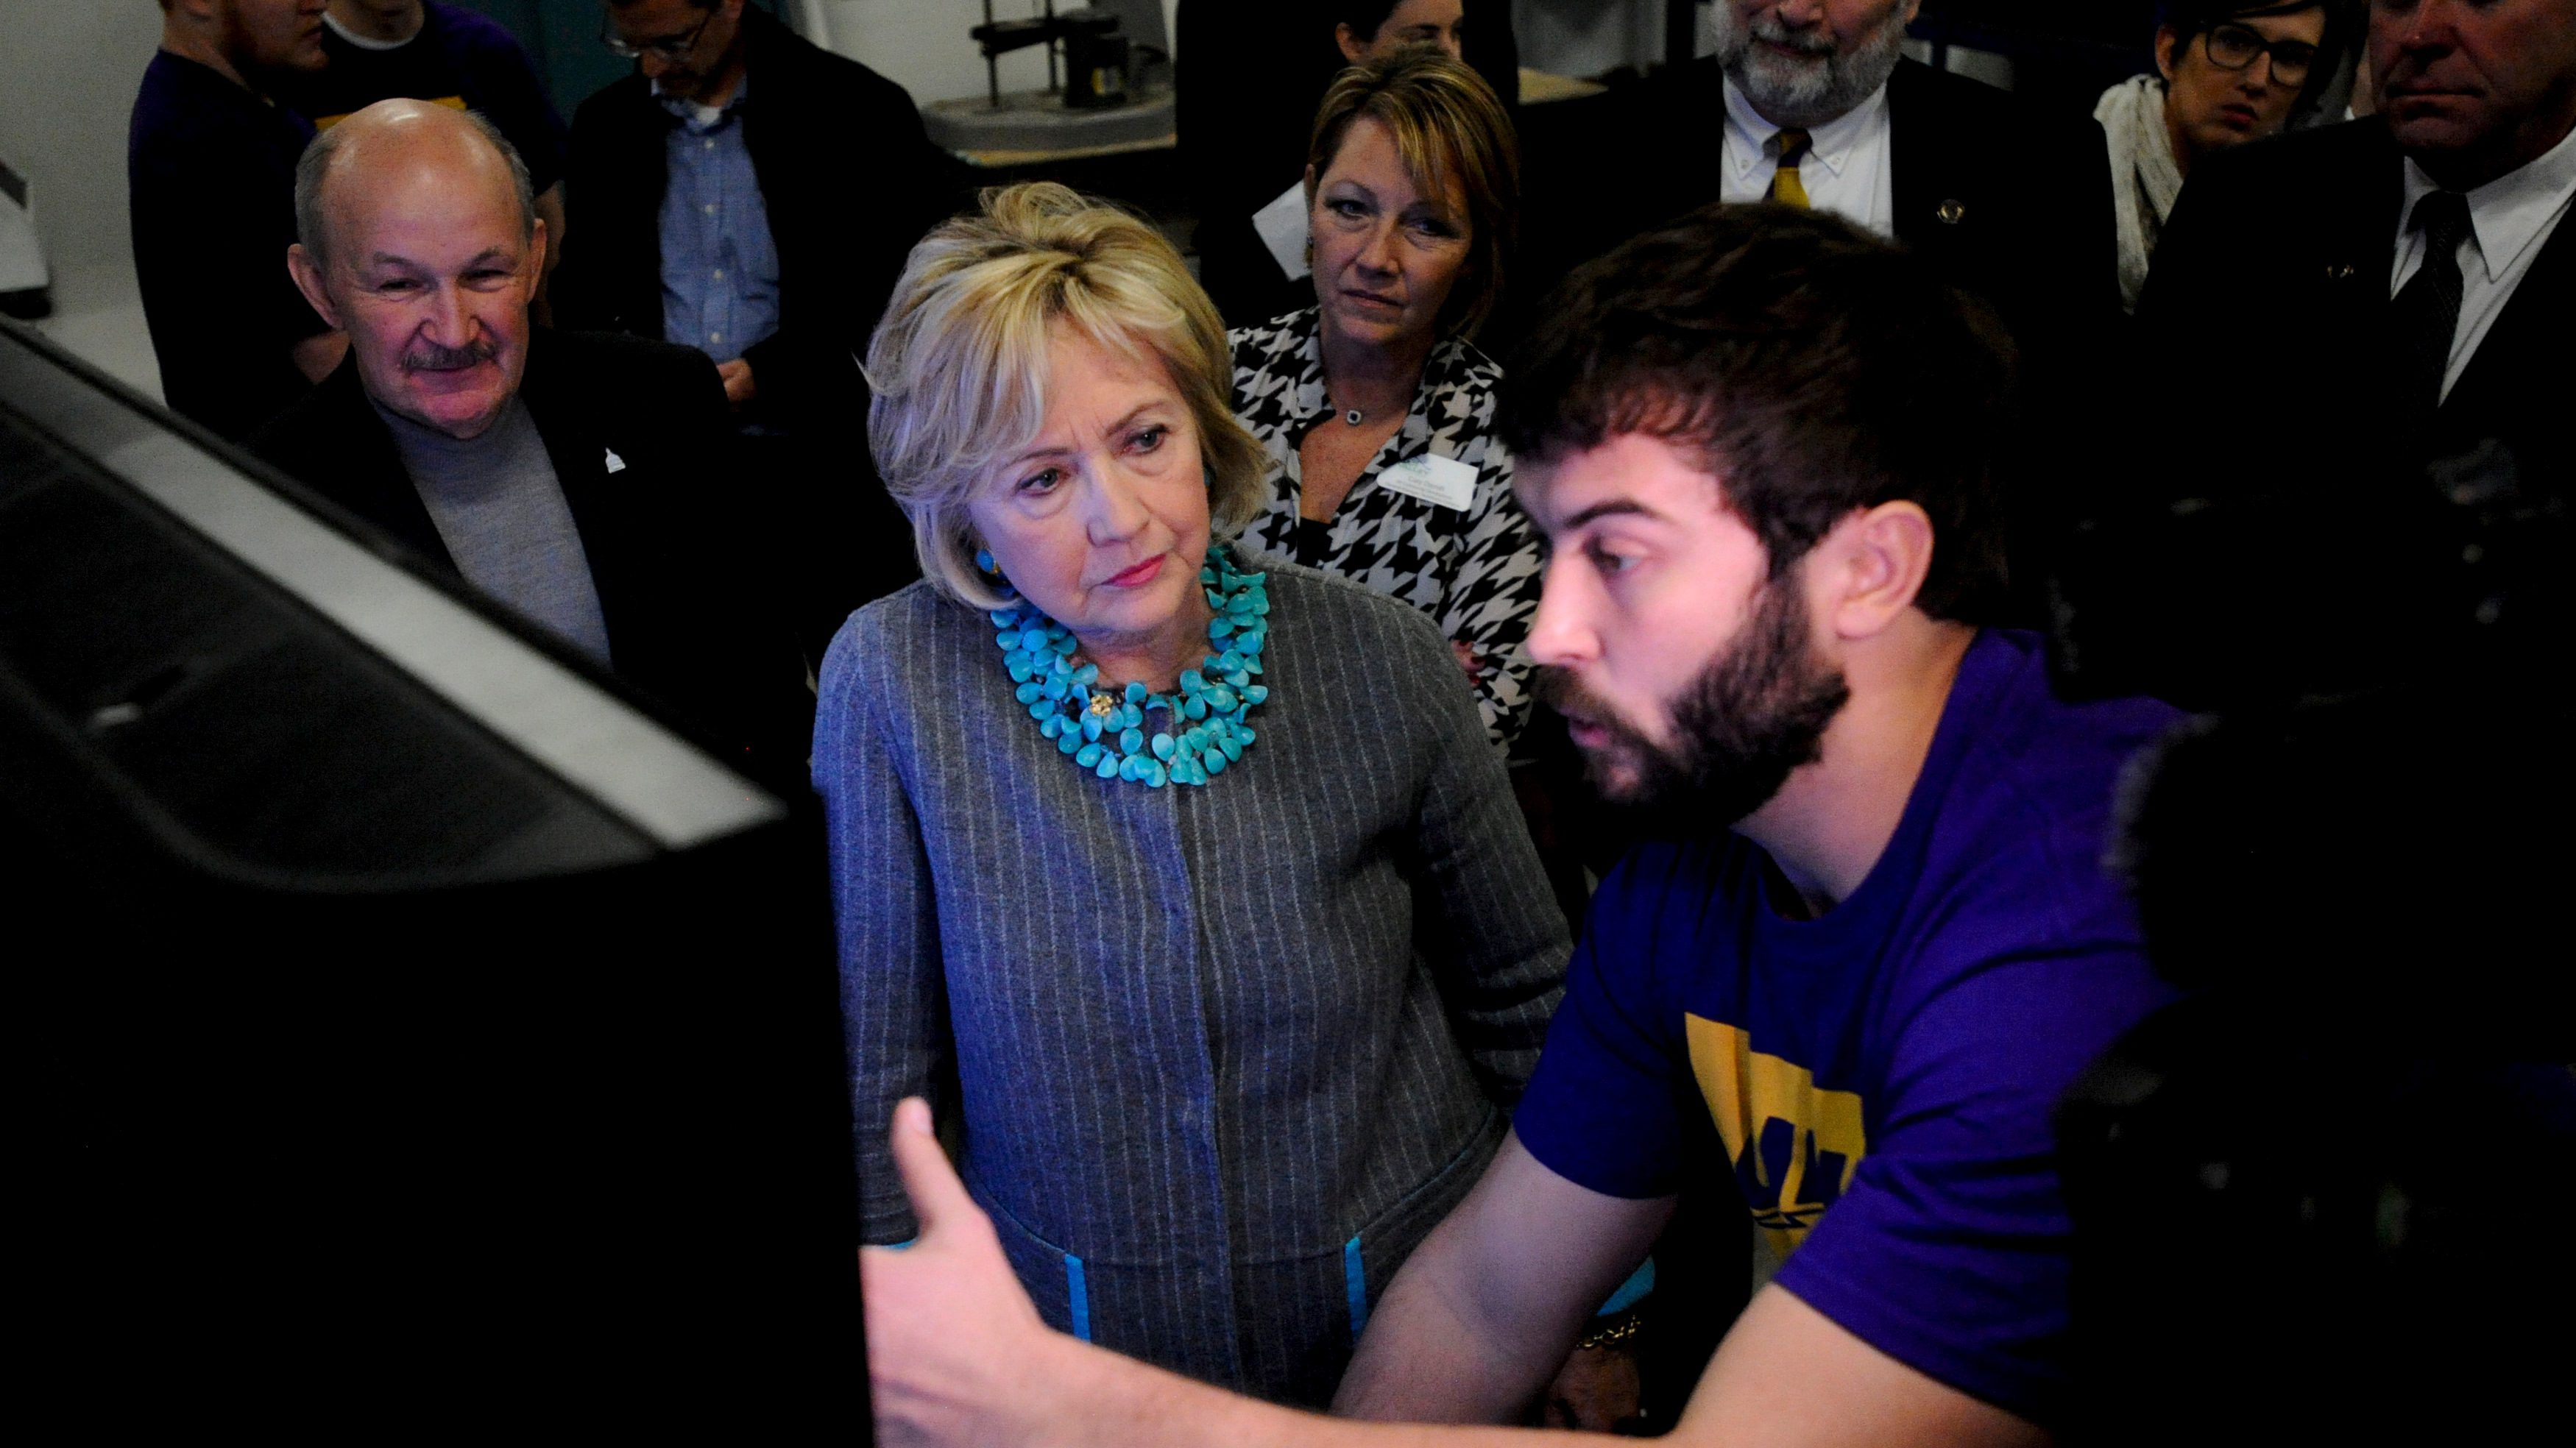 U.S. Democratic presidential candidate Hillary Clinton (C) is shown the designs that are fed into the 3-D printer at Cedar Valley TechWorks in Waterloo, Iowa December 9, 2015.